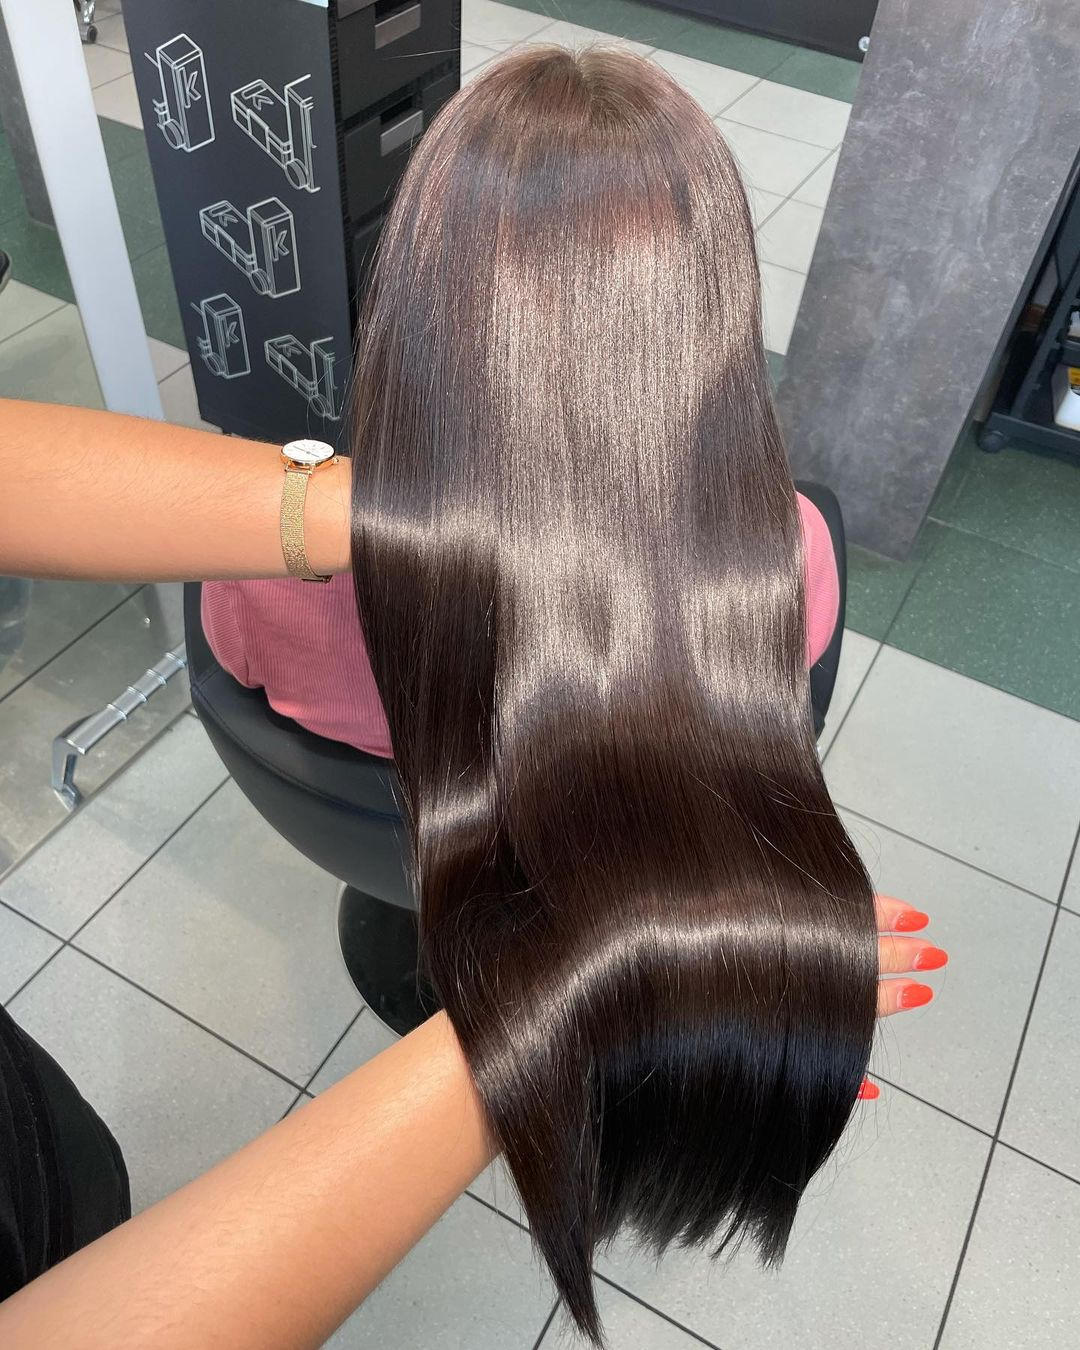 What Salon Hair Treatments Are the Most Effective